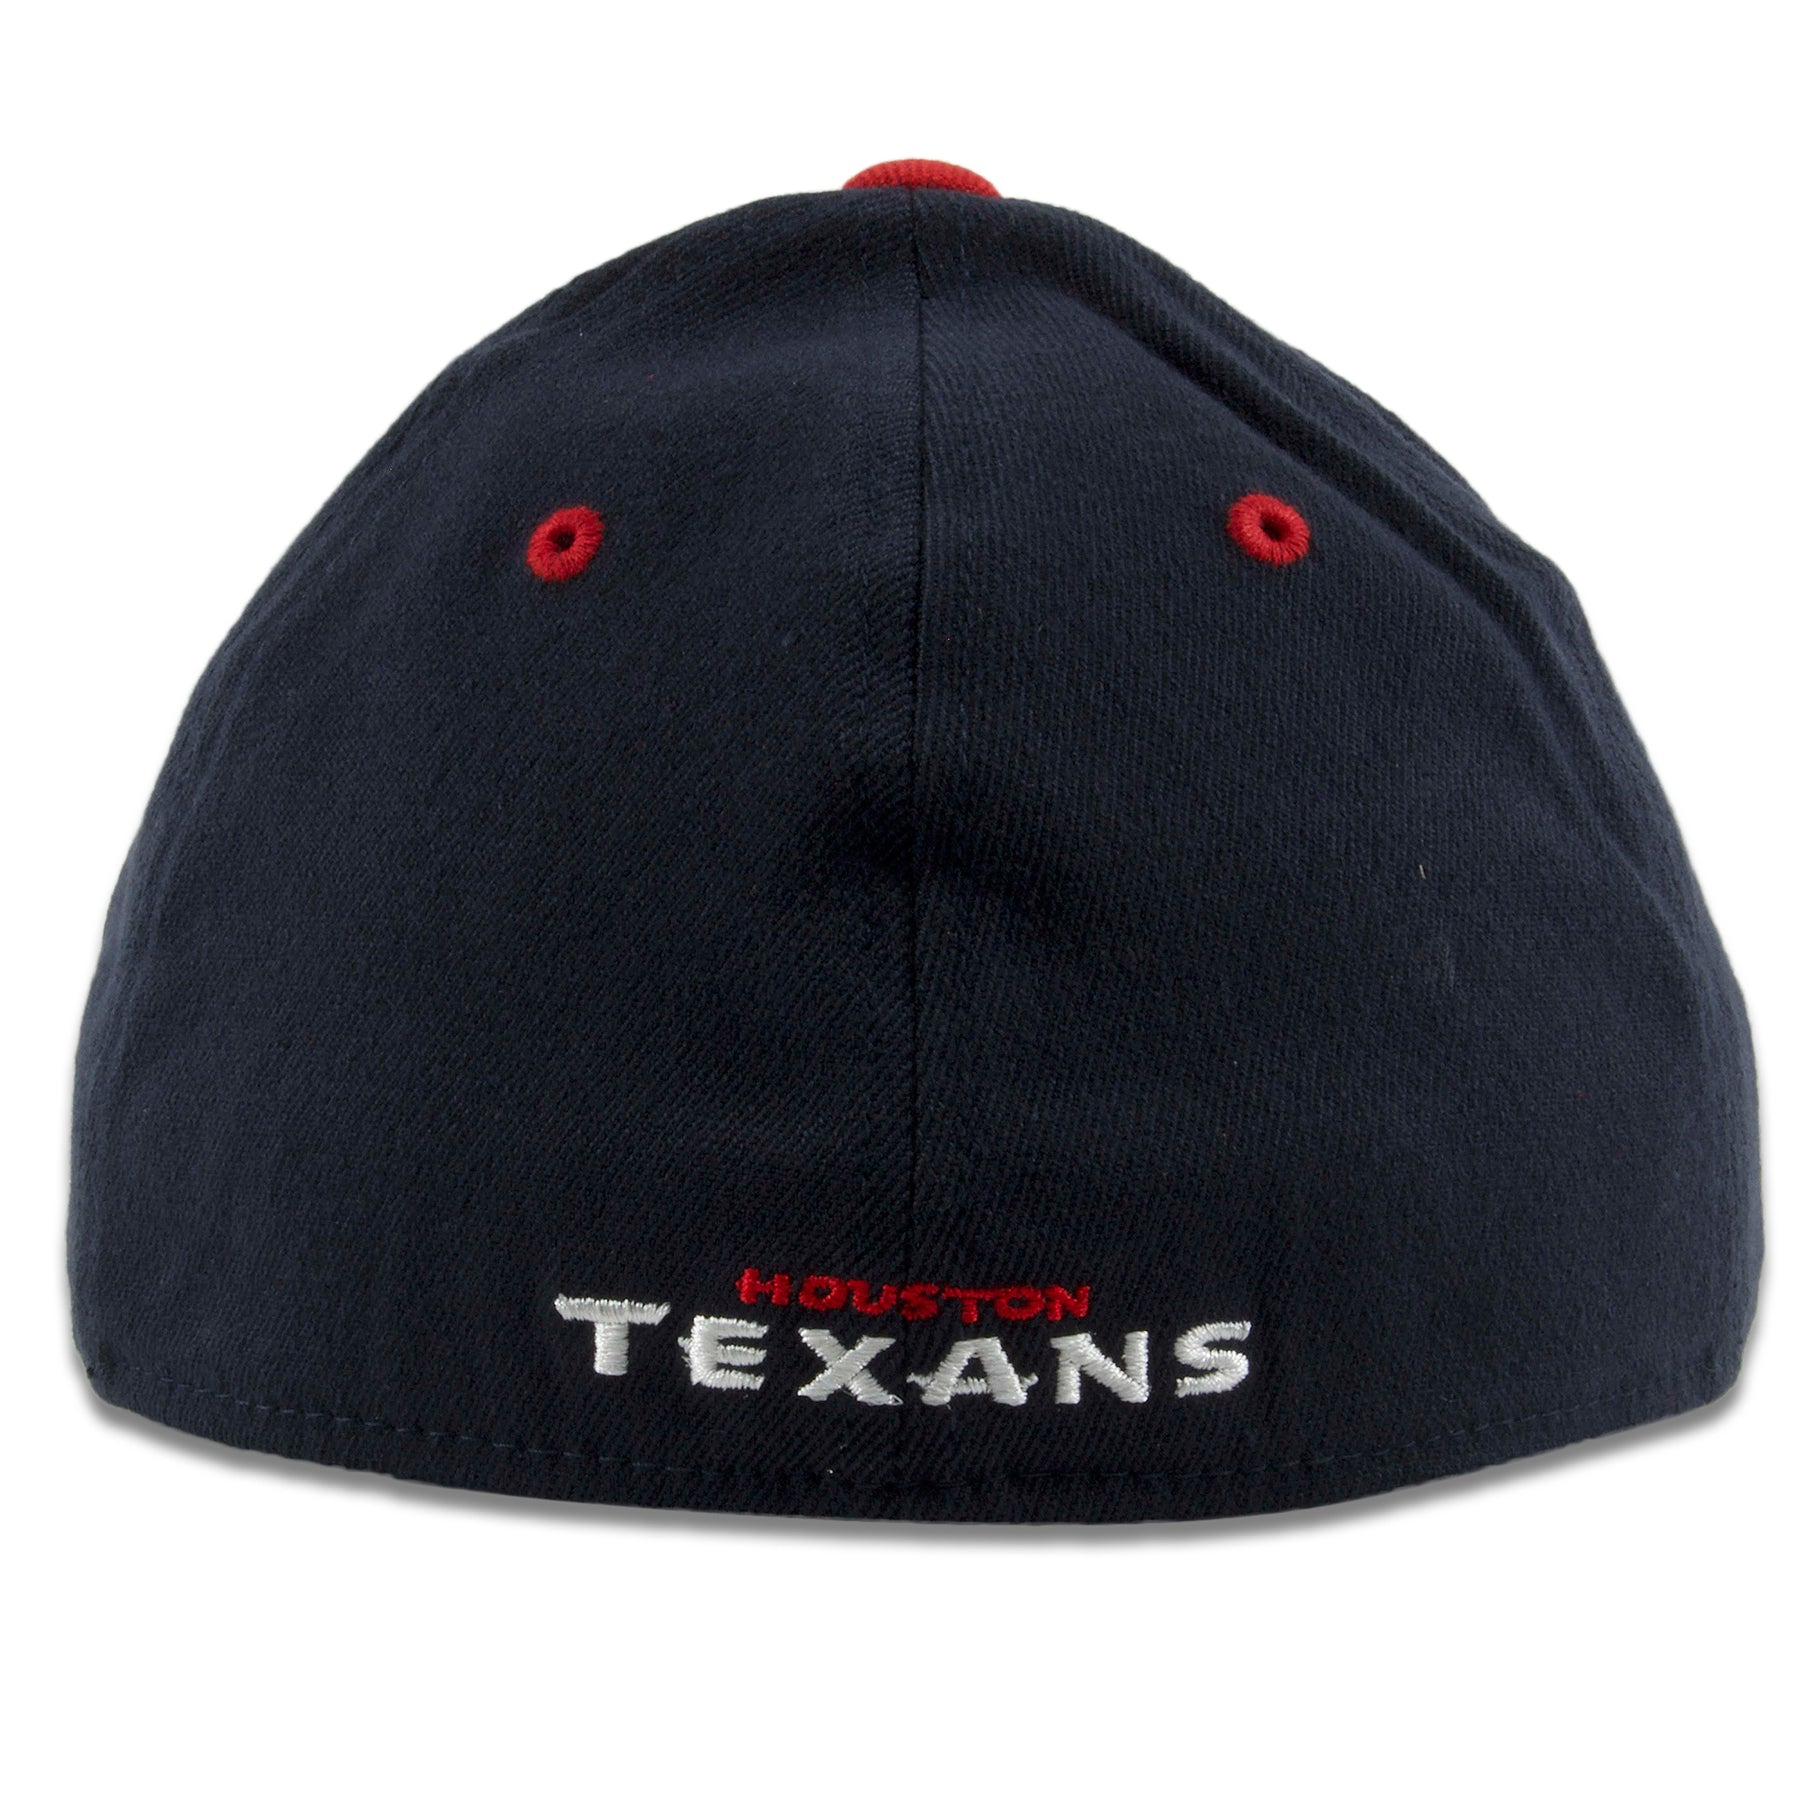 8451067643d37 Houston Texans Navy Blue Kickoff  47 Brand Flexfit Cap – Cap Swag